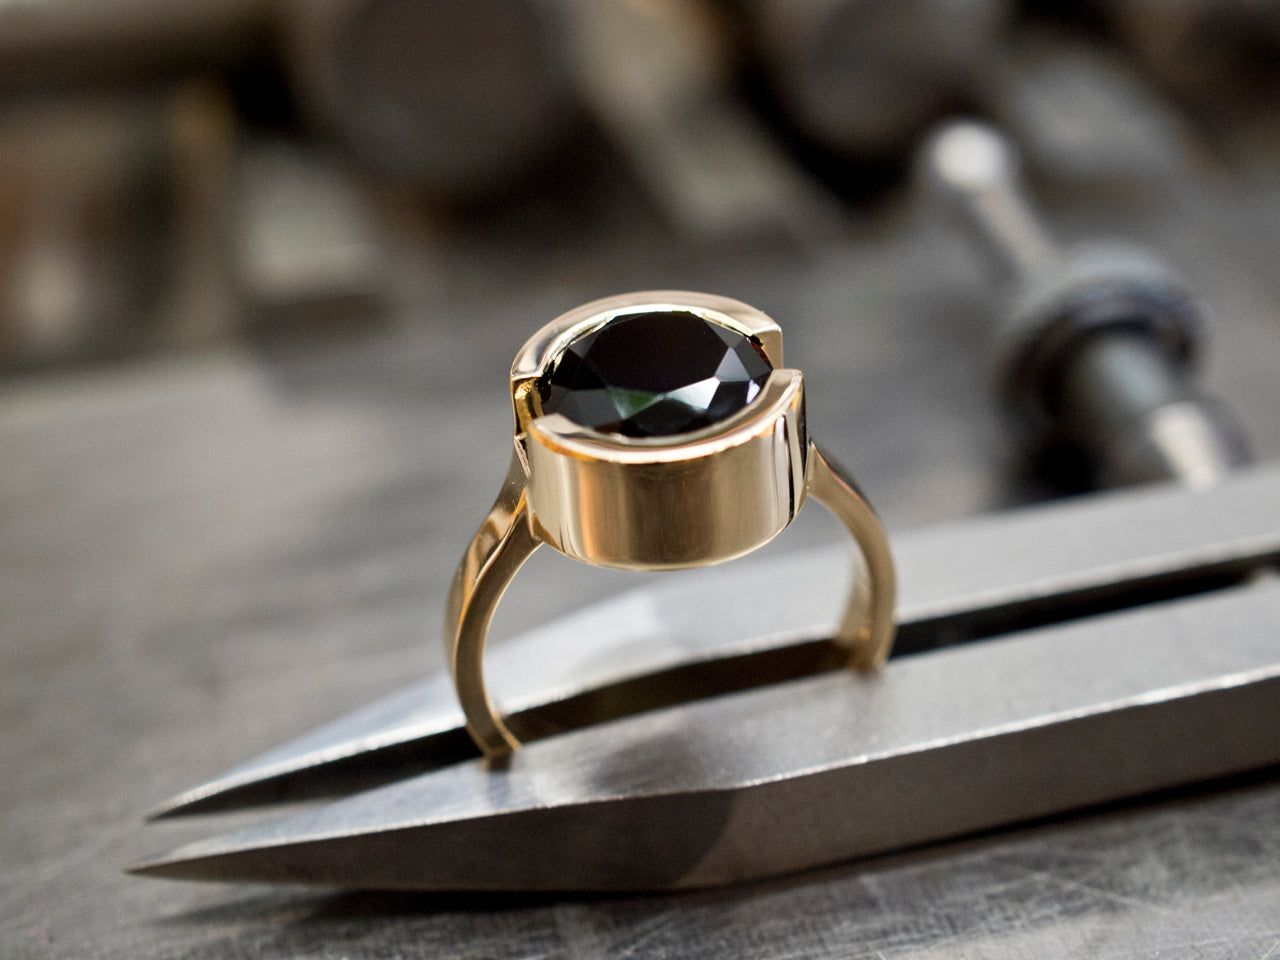 14k gold with onyx.